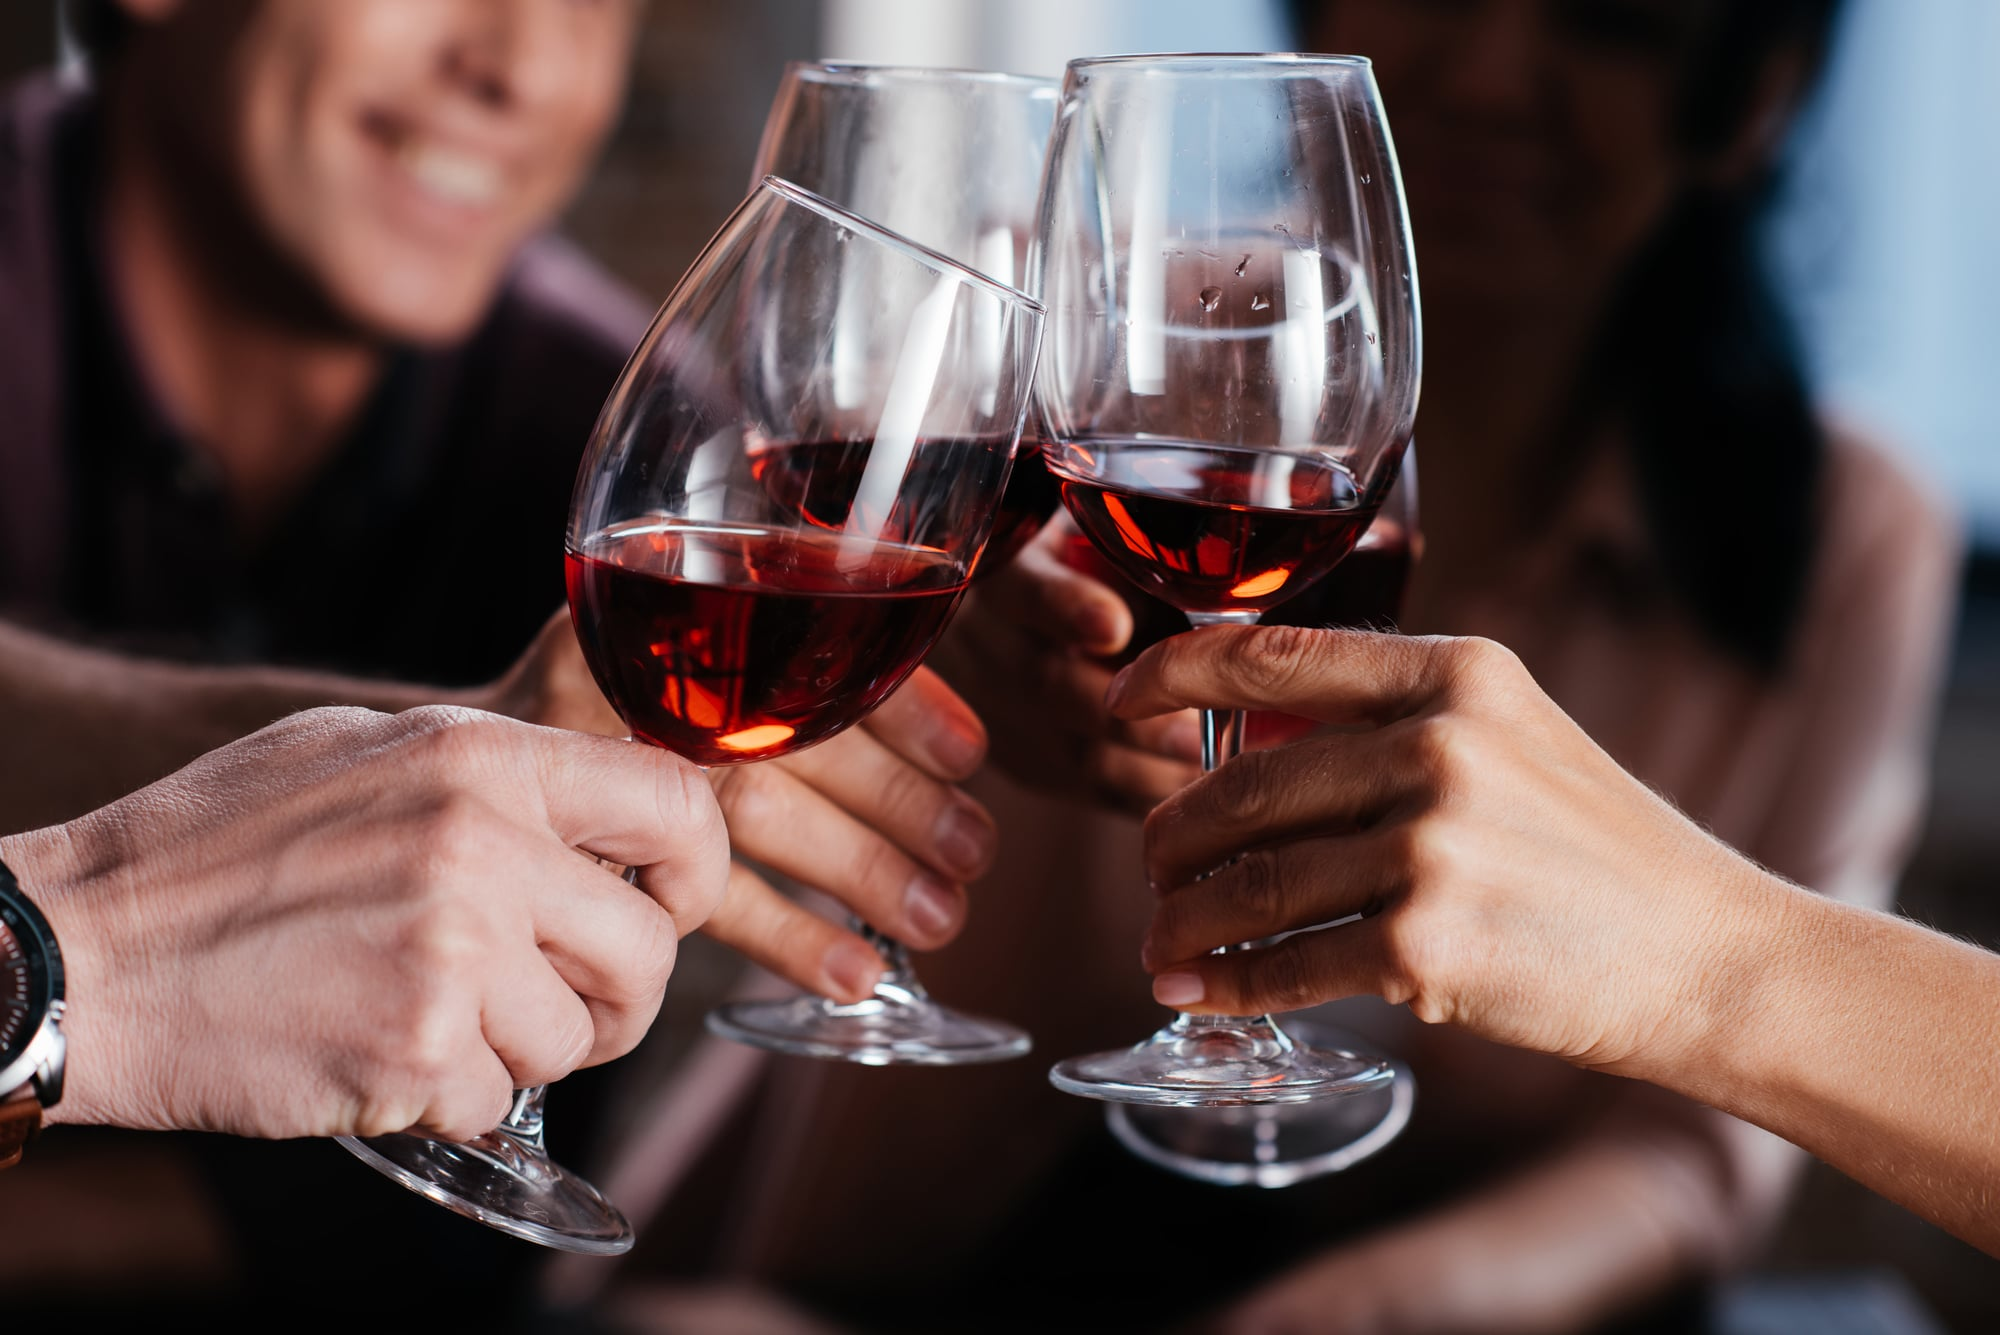 A group saying cheers with red wine in wine glasses.